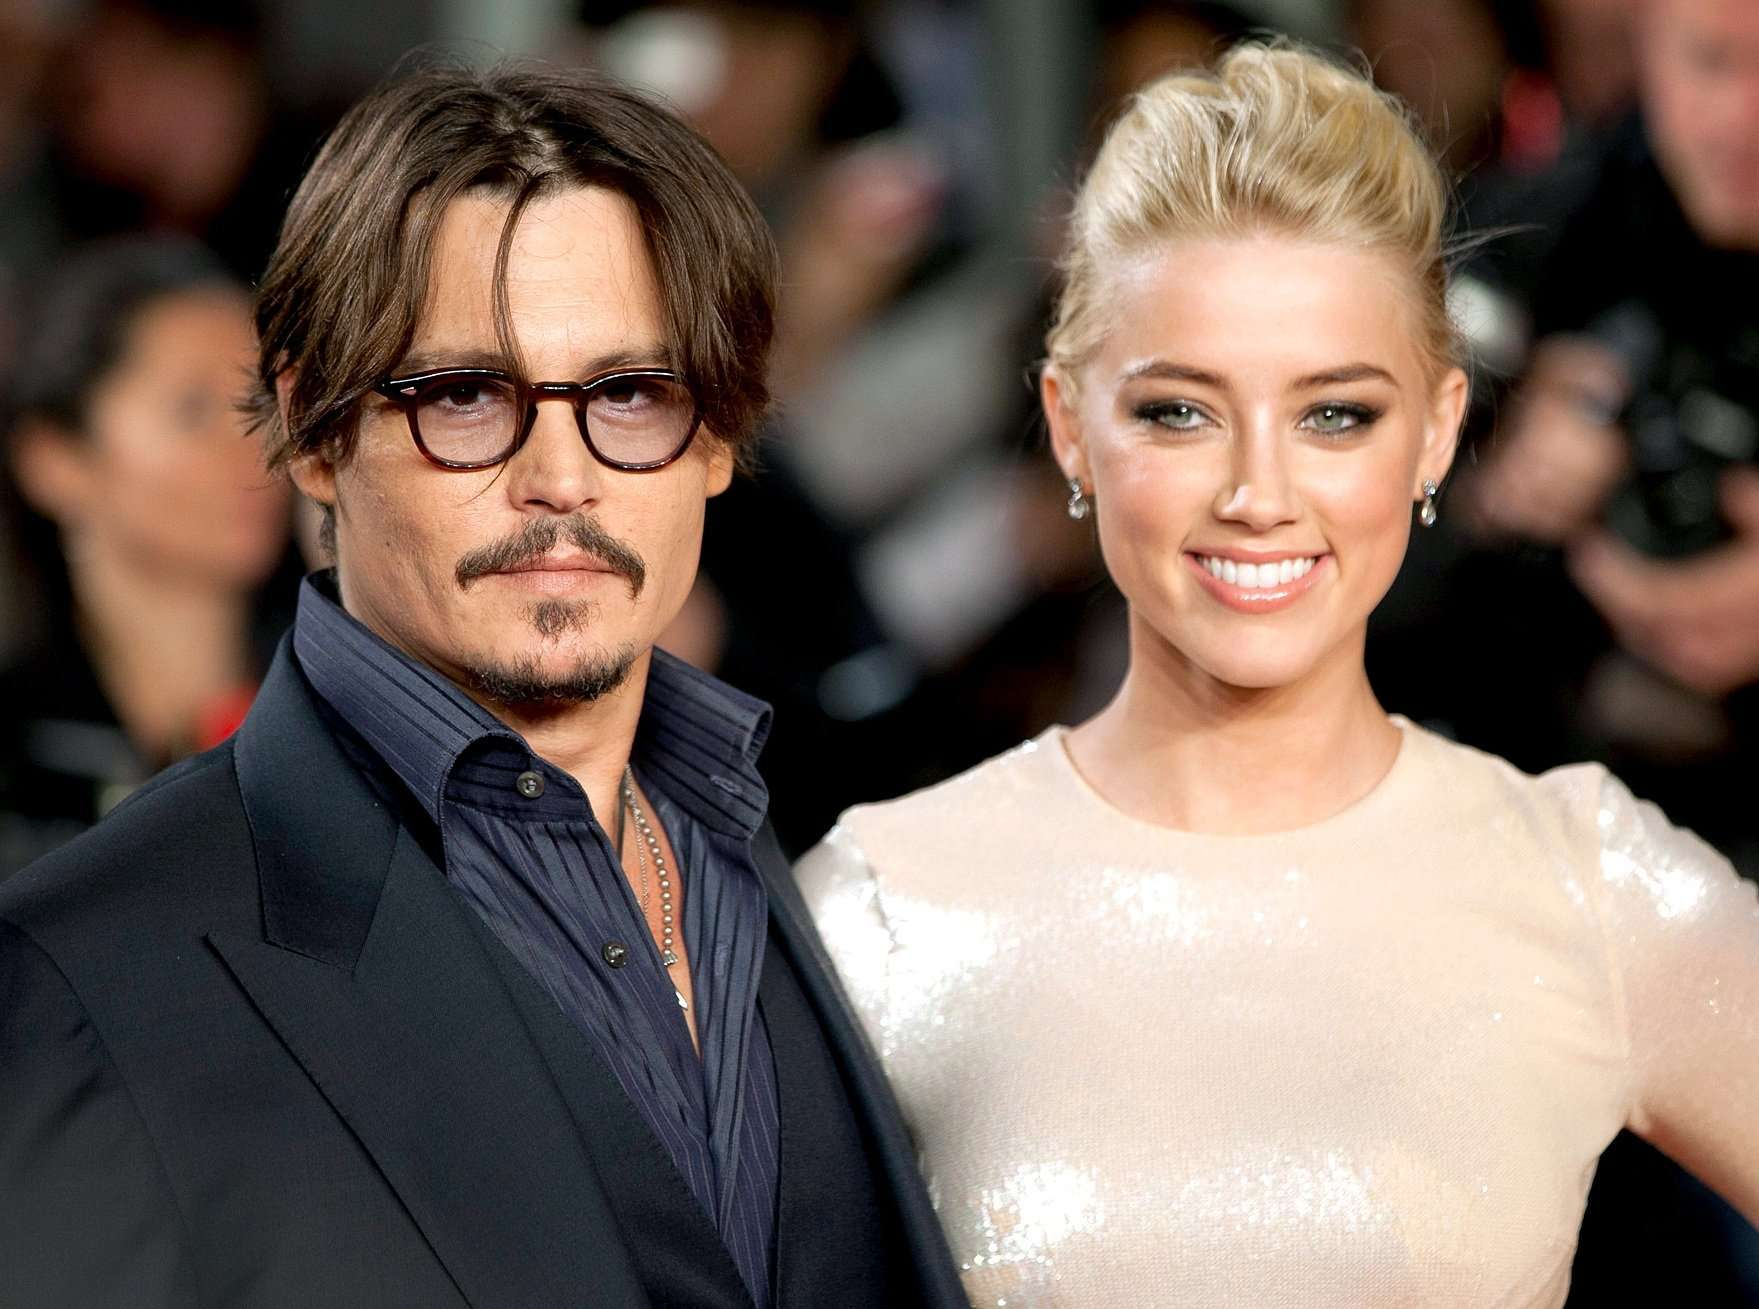 Johnny Depp and Amber Heard fight escalating!, Profile News - بروفايل نيوز